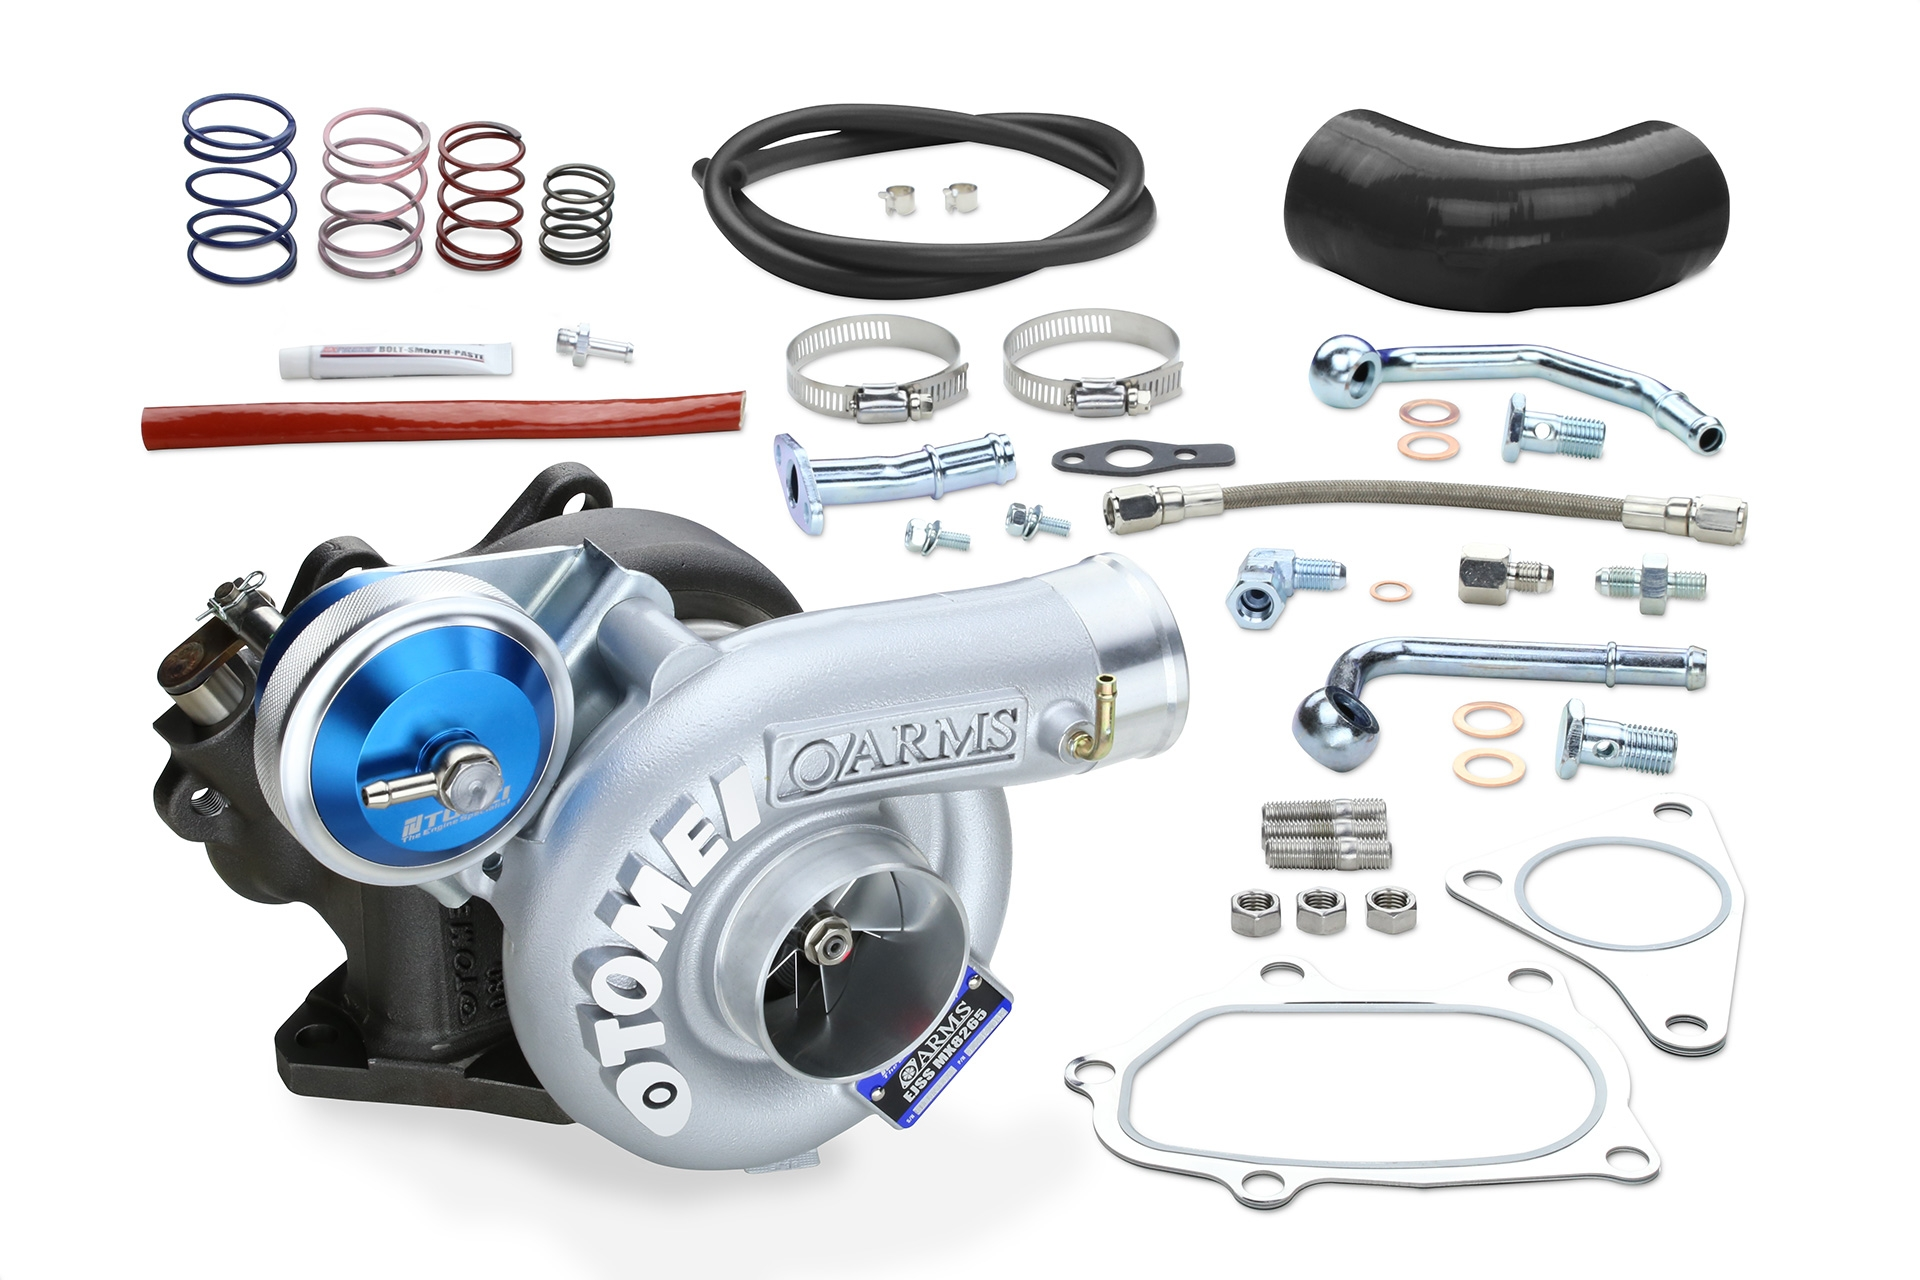 Tomei Turbocharger Kit Arms MX8265 EJ Single Scroll